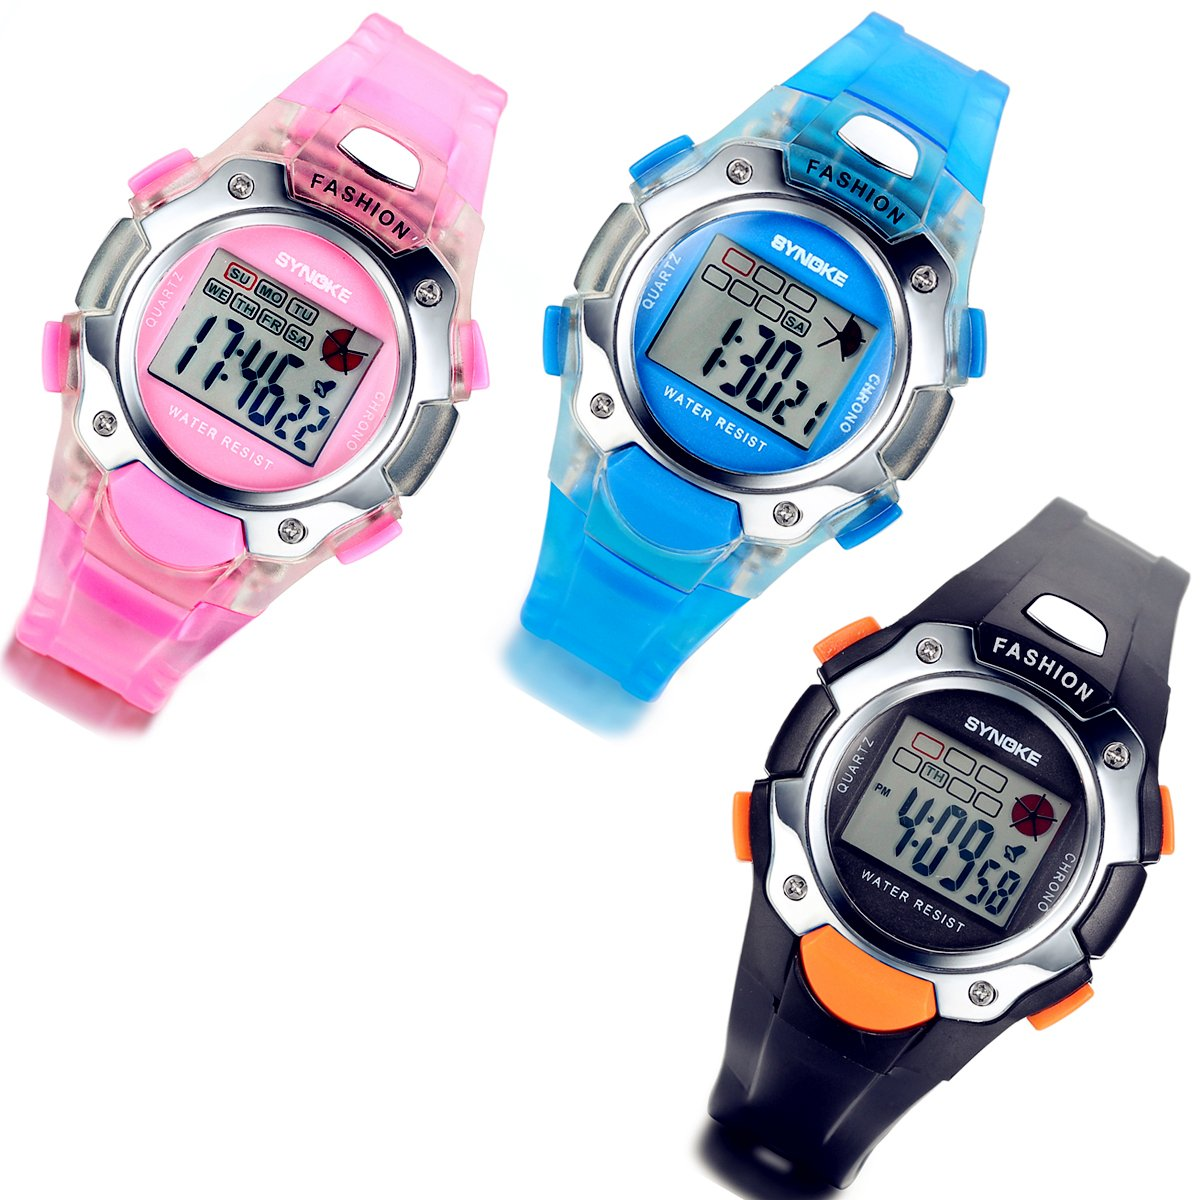 Lancardo 3 Pack Blue/Pink/Black Multifunction Digital Watches for Boys Girls Kids Christmas with Gift Bag by Lancardo